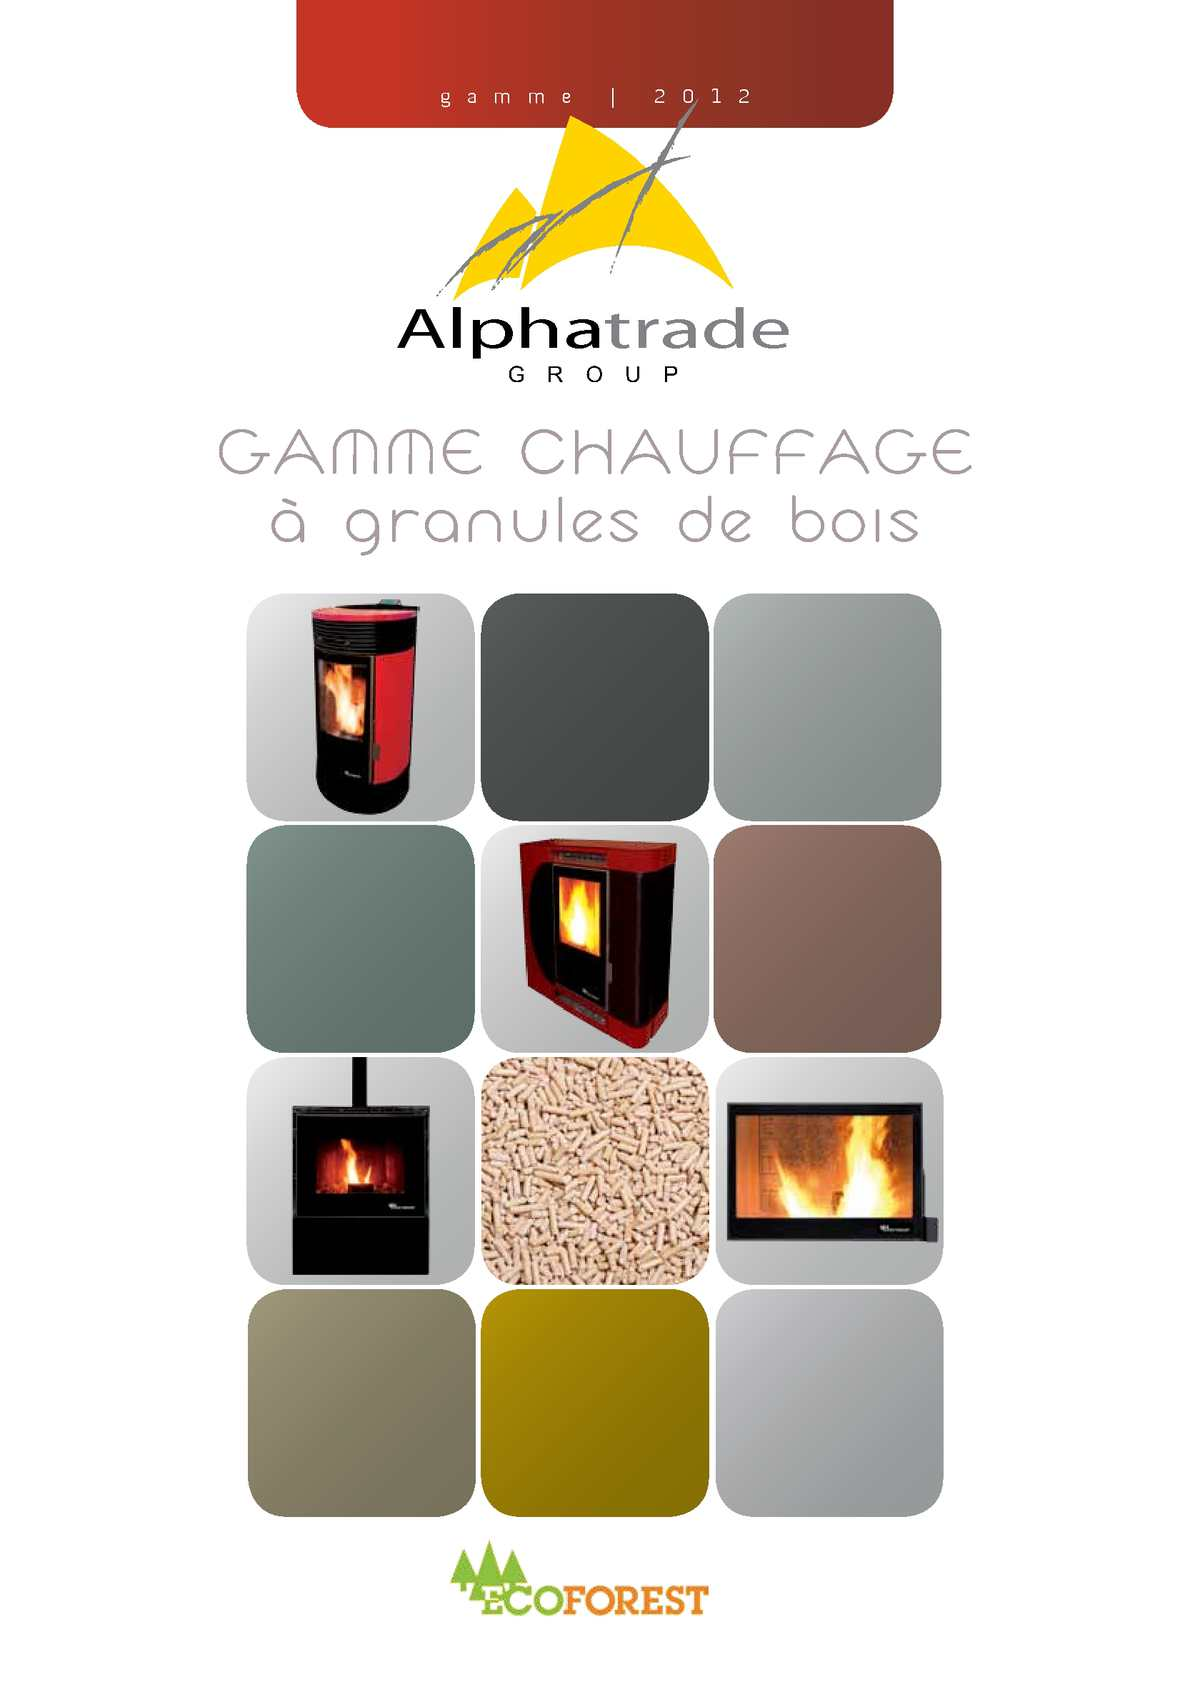 calam o alphatrade group gamme chauffage granules de bois ecoforest. Black Bedroom Furniture Sets. Home Design Ideas